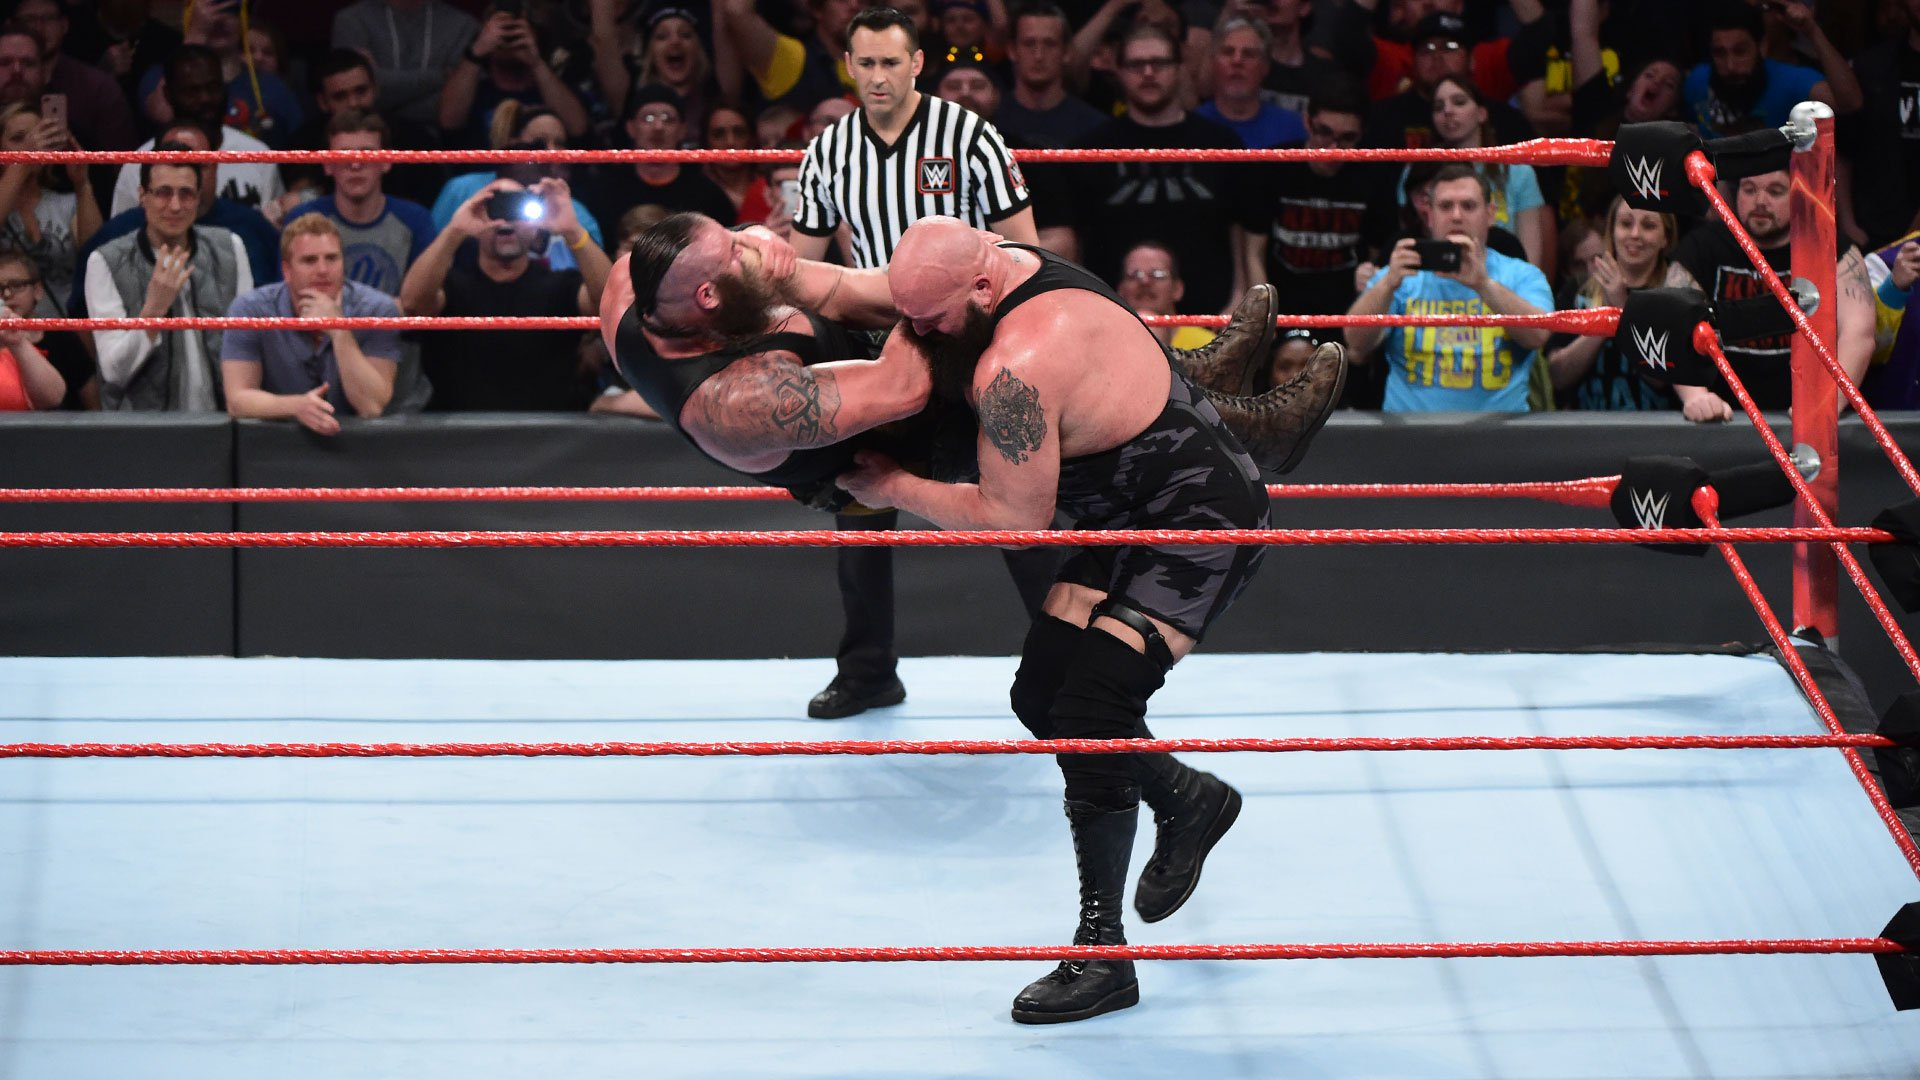 Big Show hits an monstrous chokeslam.